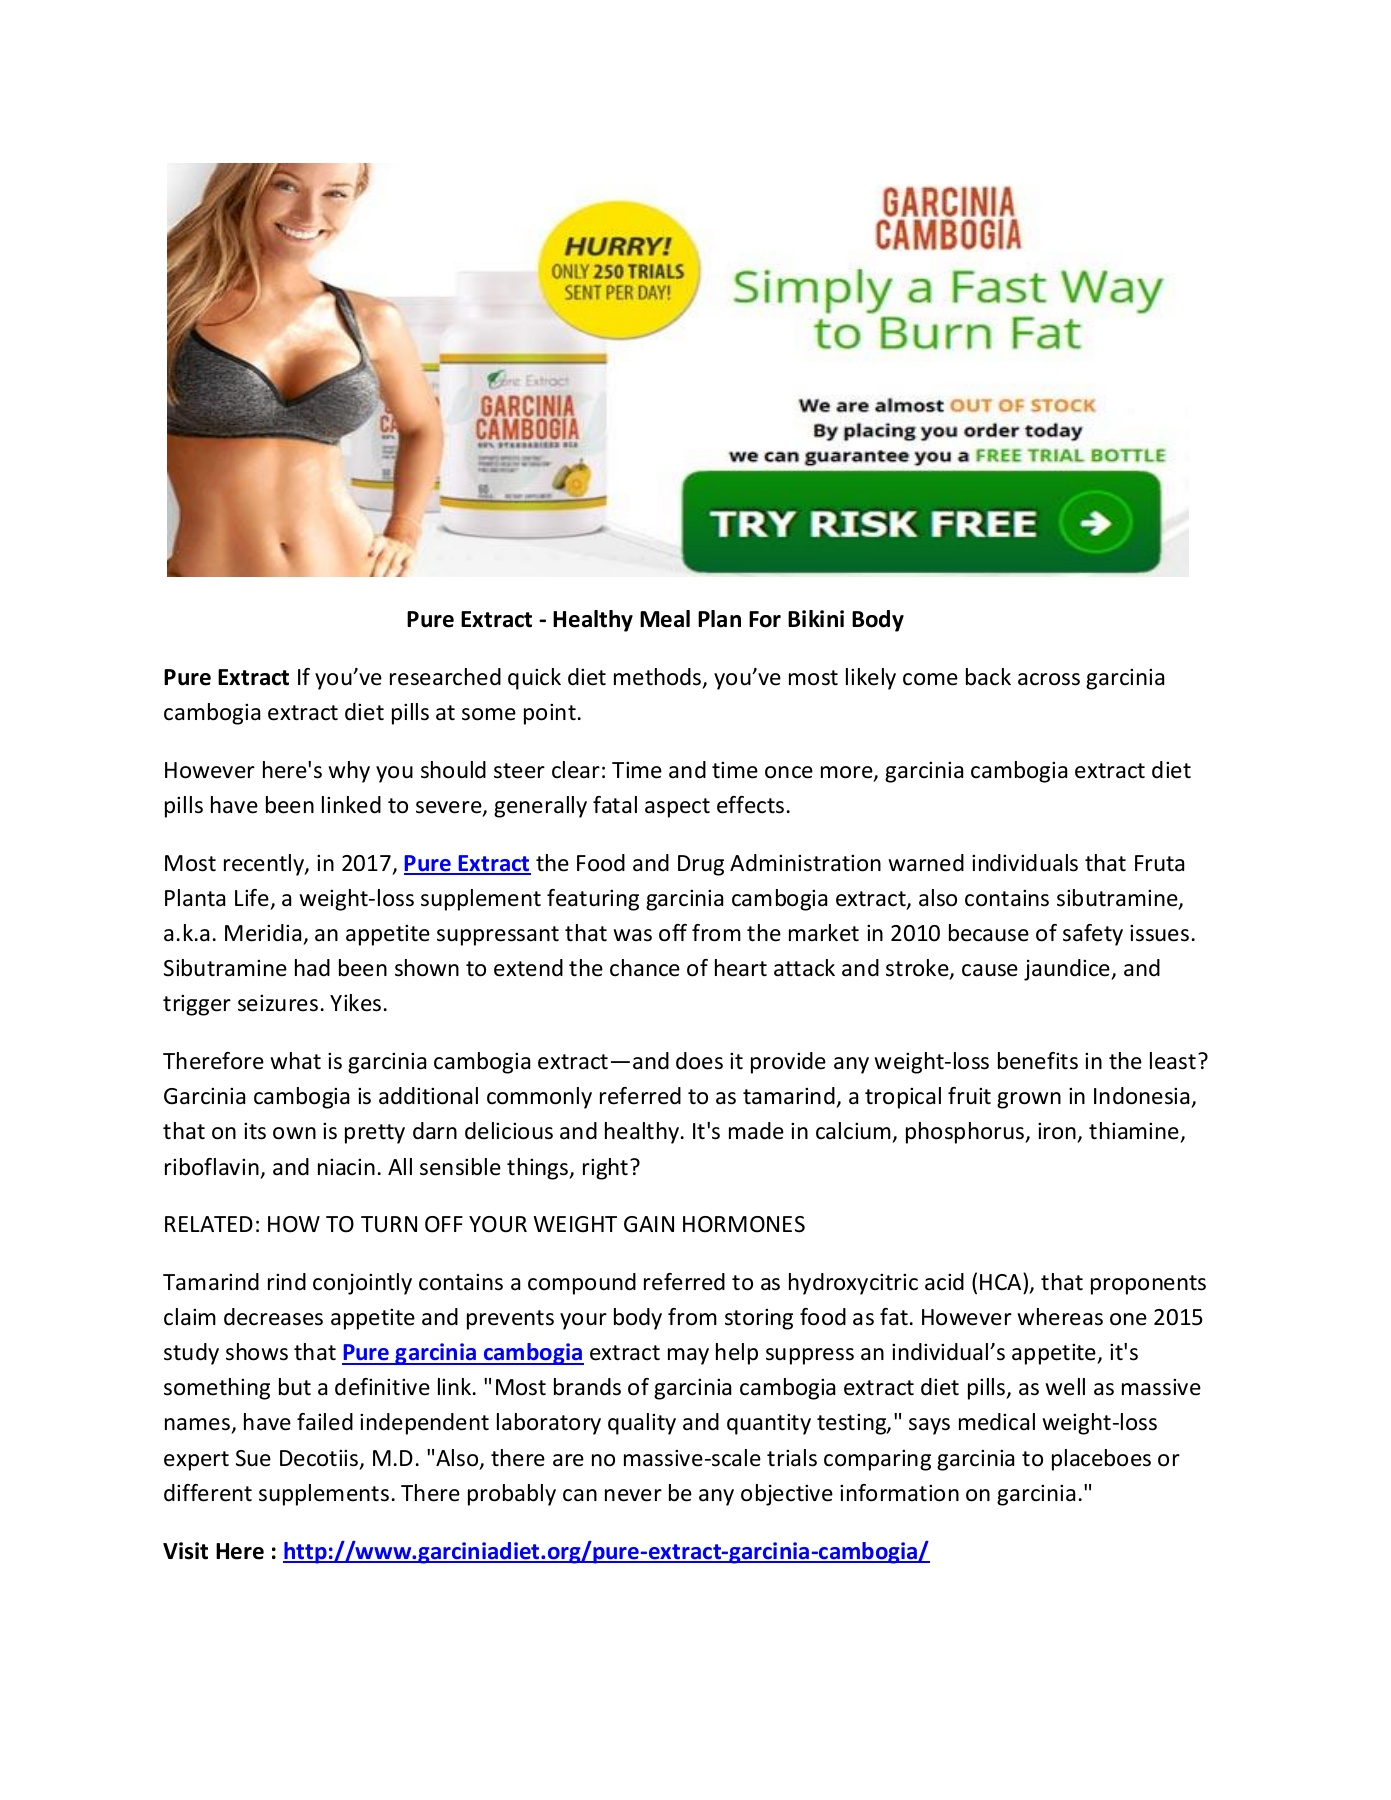 Pure Extract Natural Weight Loss Garcinia Cambogia Pages 1 1